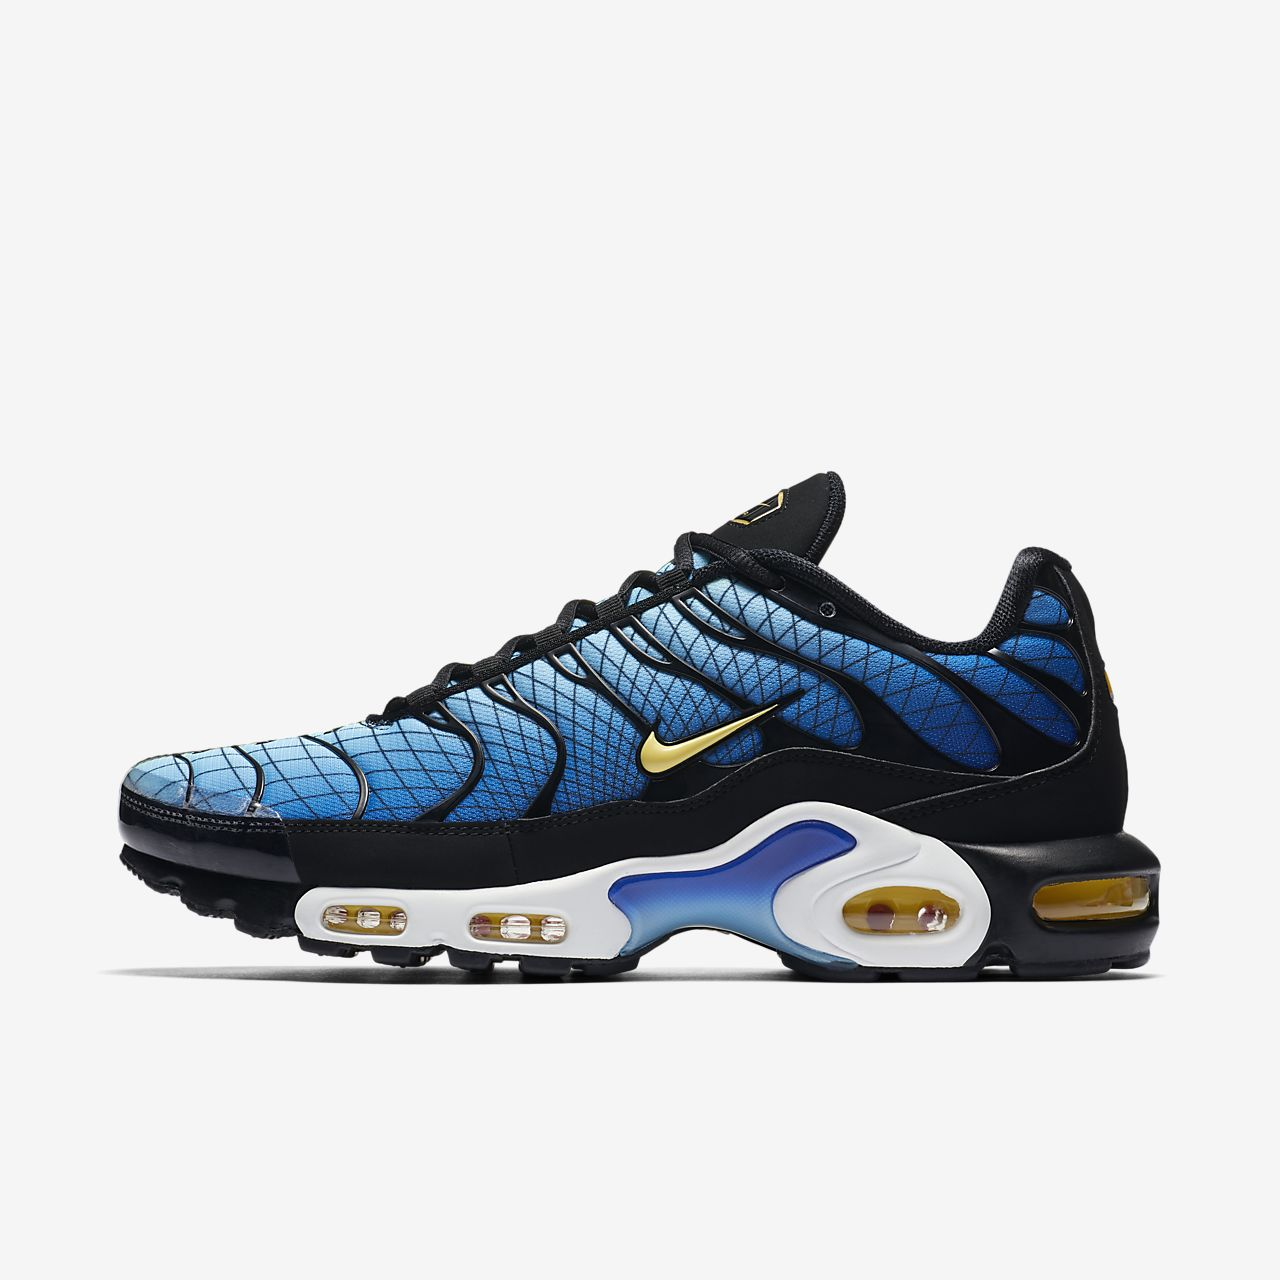 d4dc079bfb37f4 Nike Air Max Plus TN SE Men s Shoe. Nike.com GB